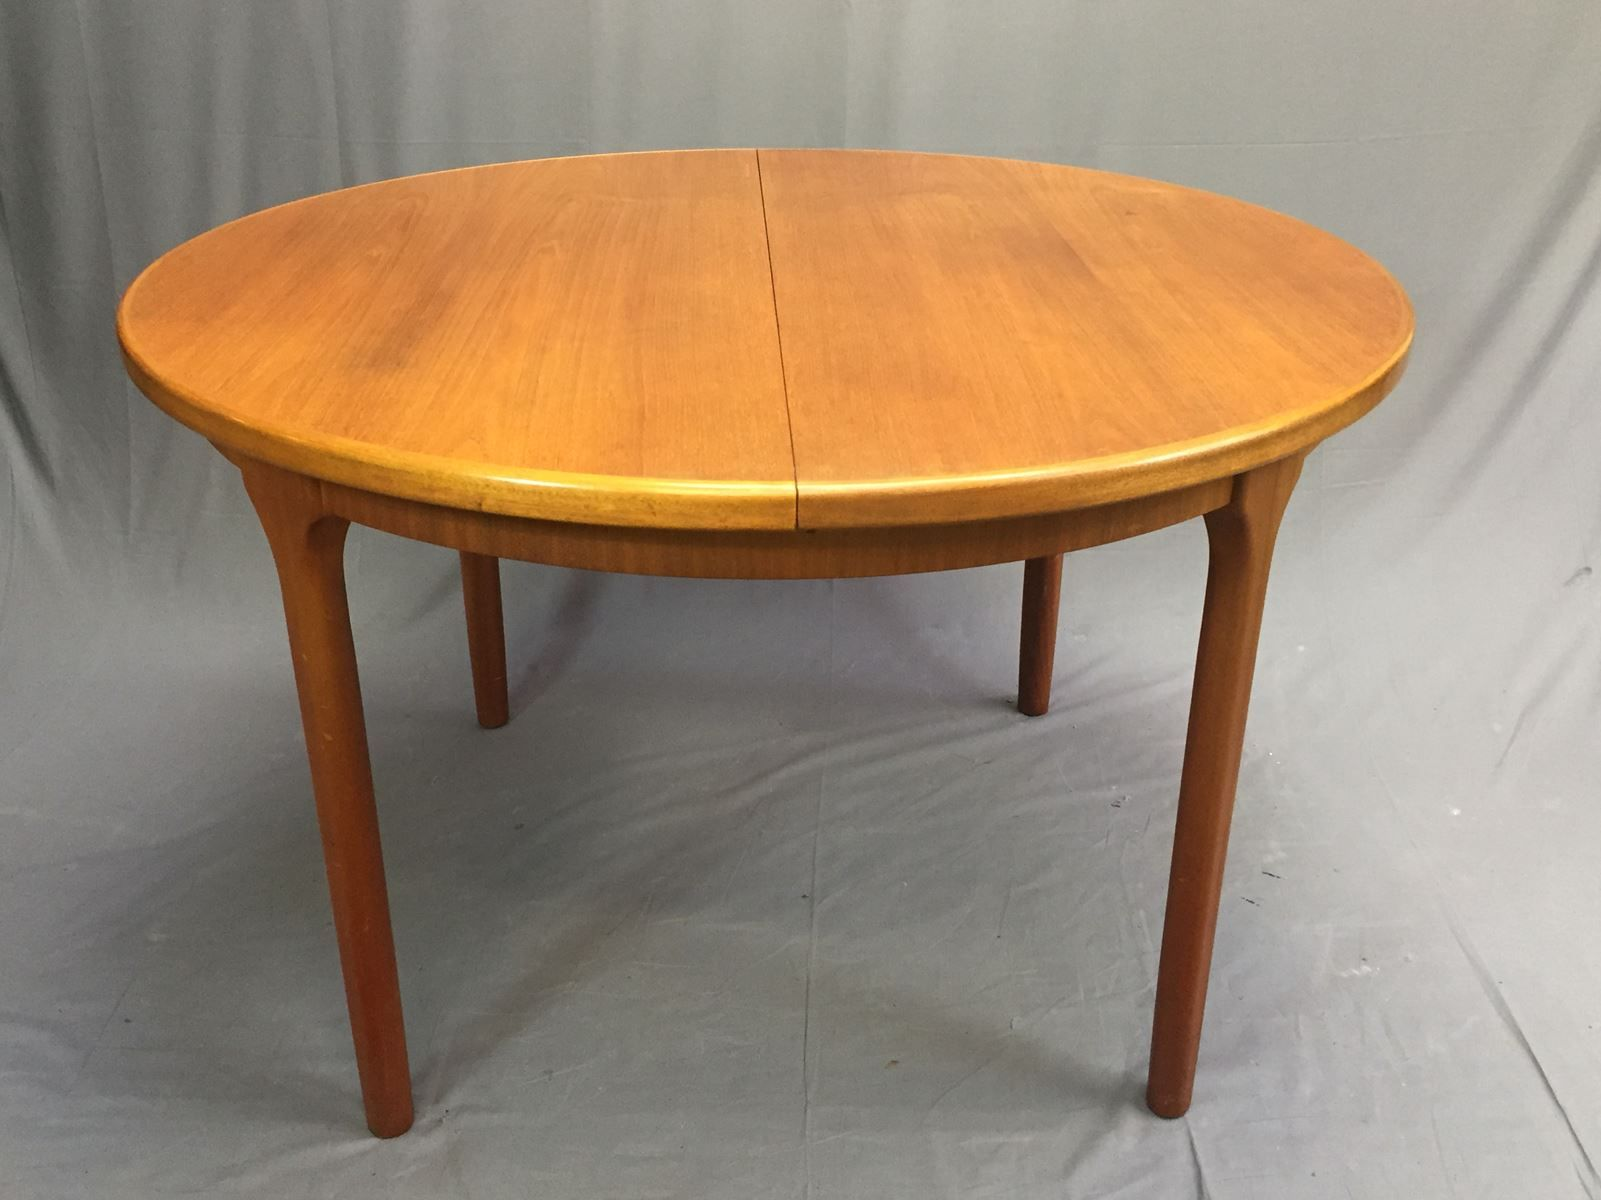 Table salle a manger ovale scandinave fabulous tapis rond for Table style scandinave